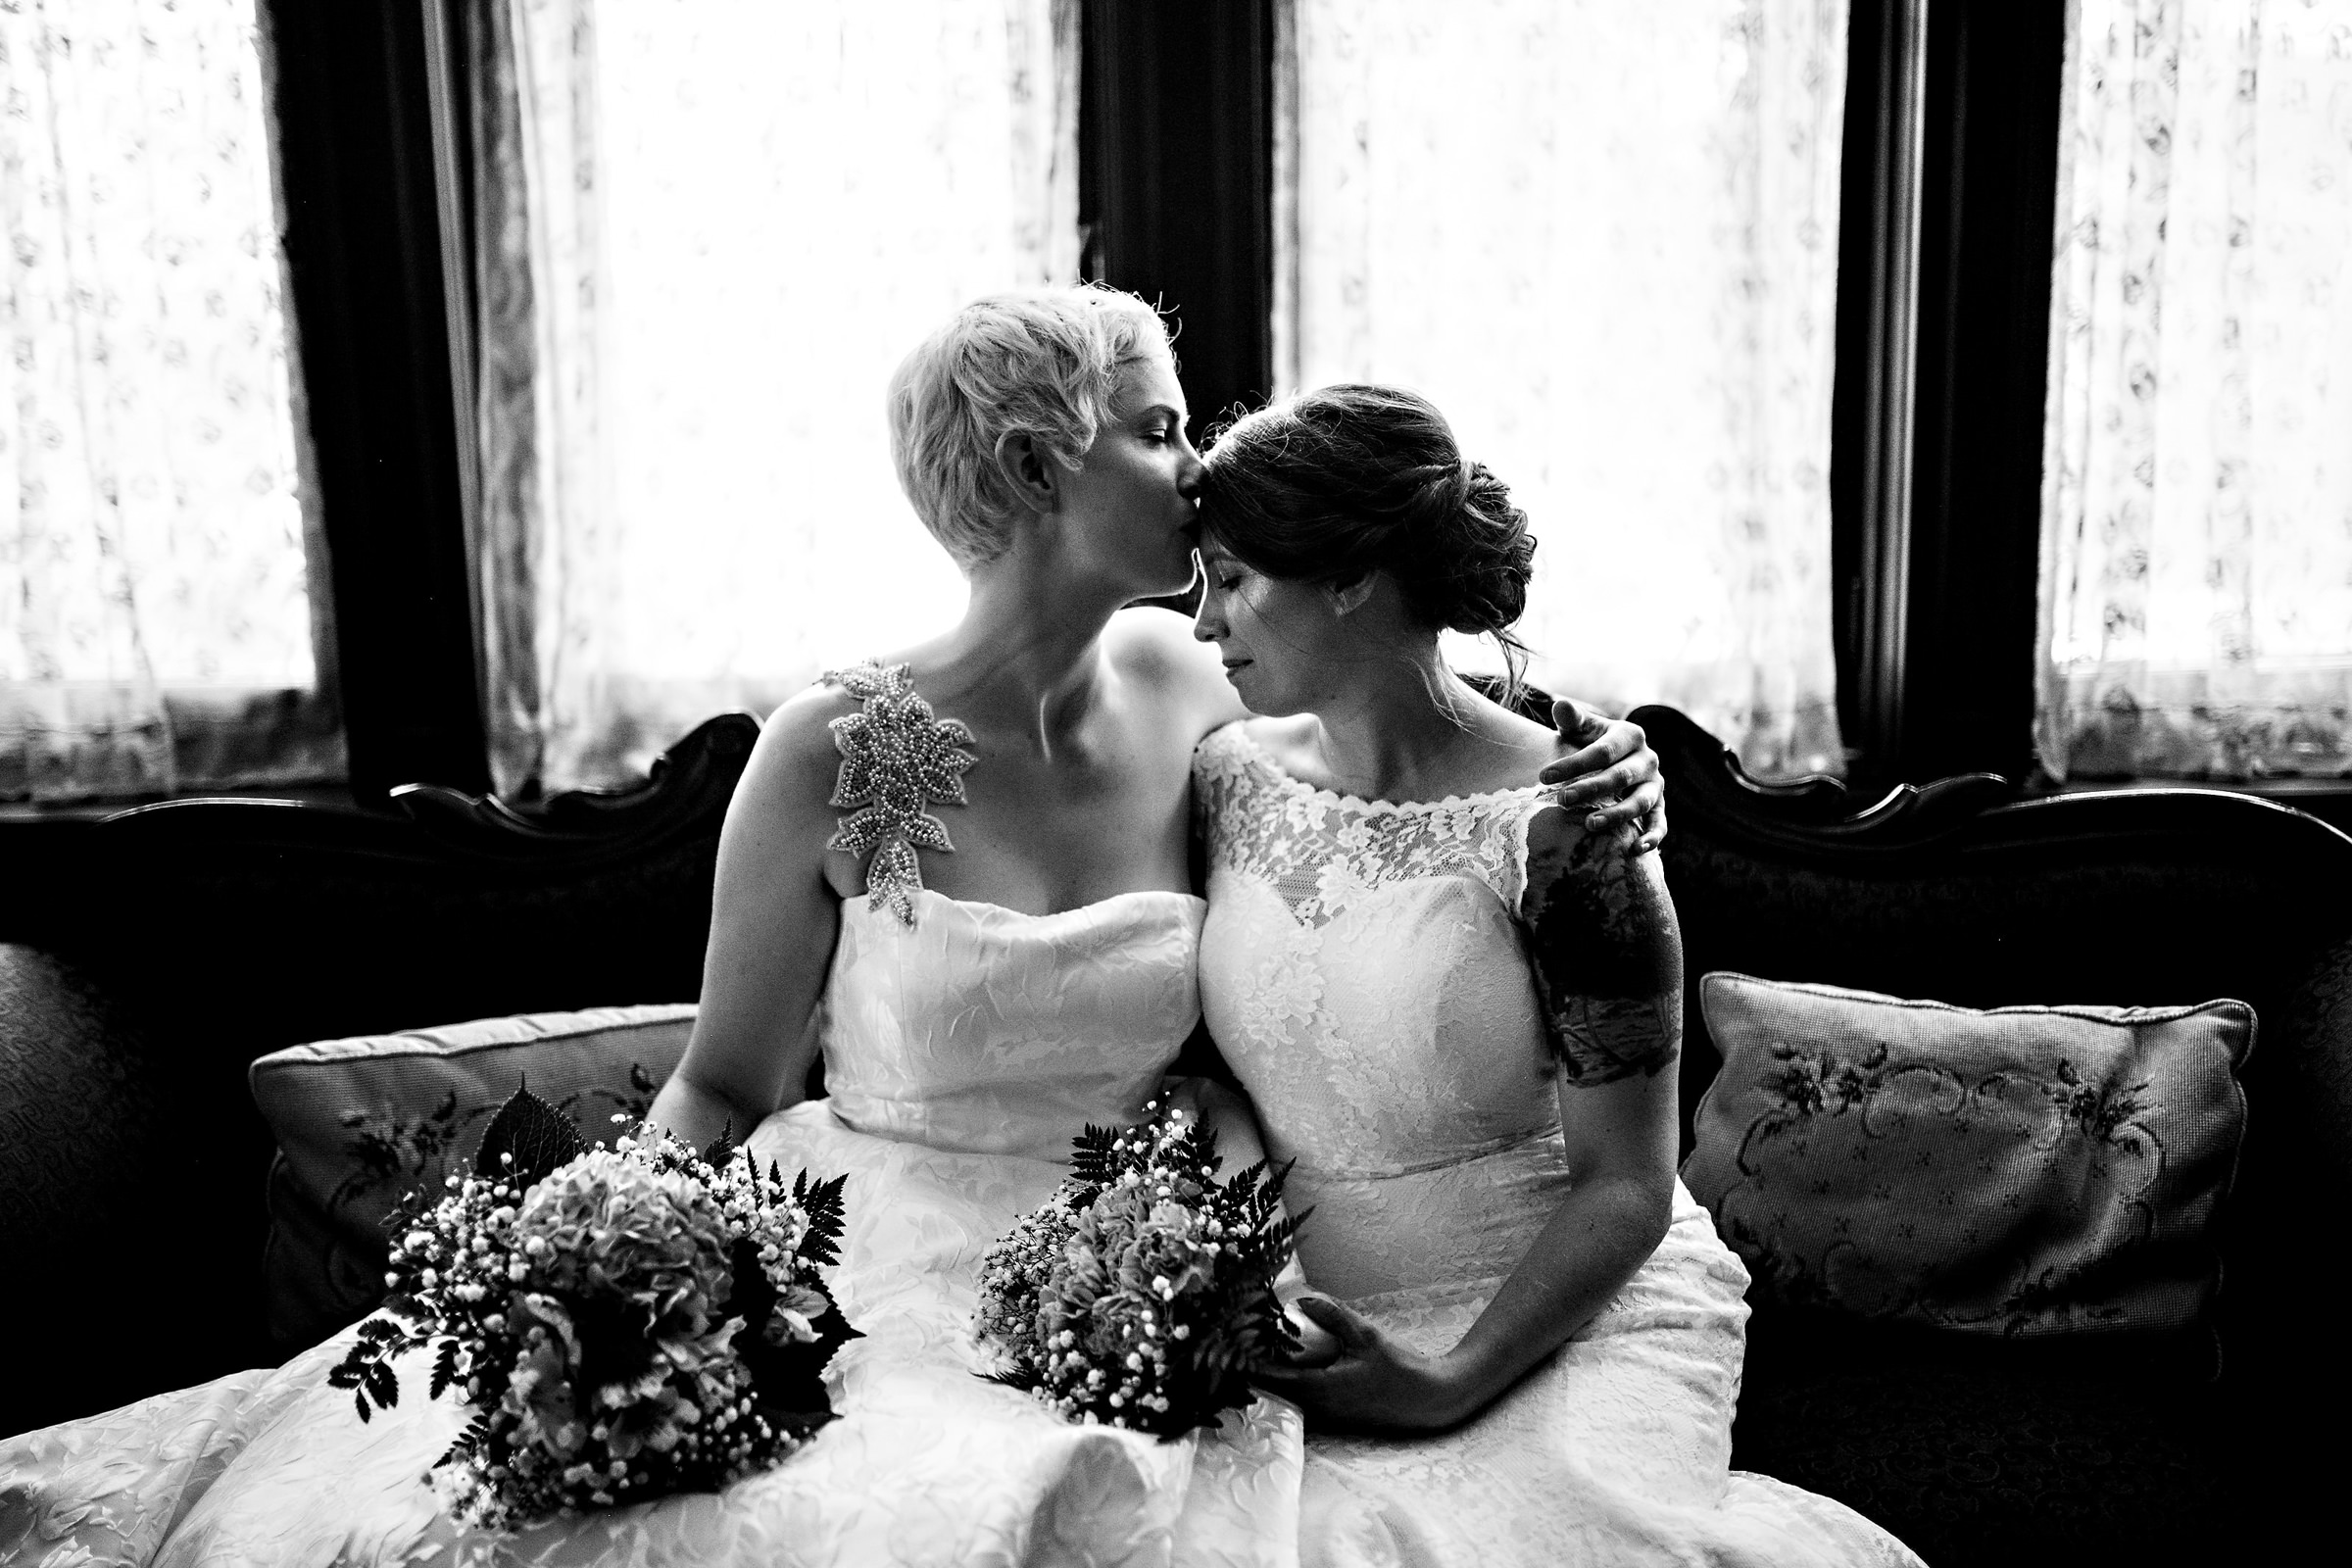 brides-on-couch-embrace-moore-photography